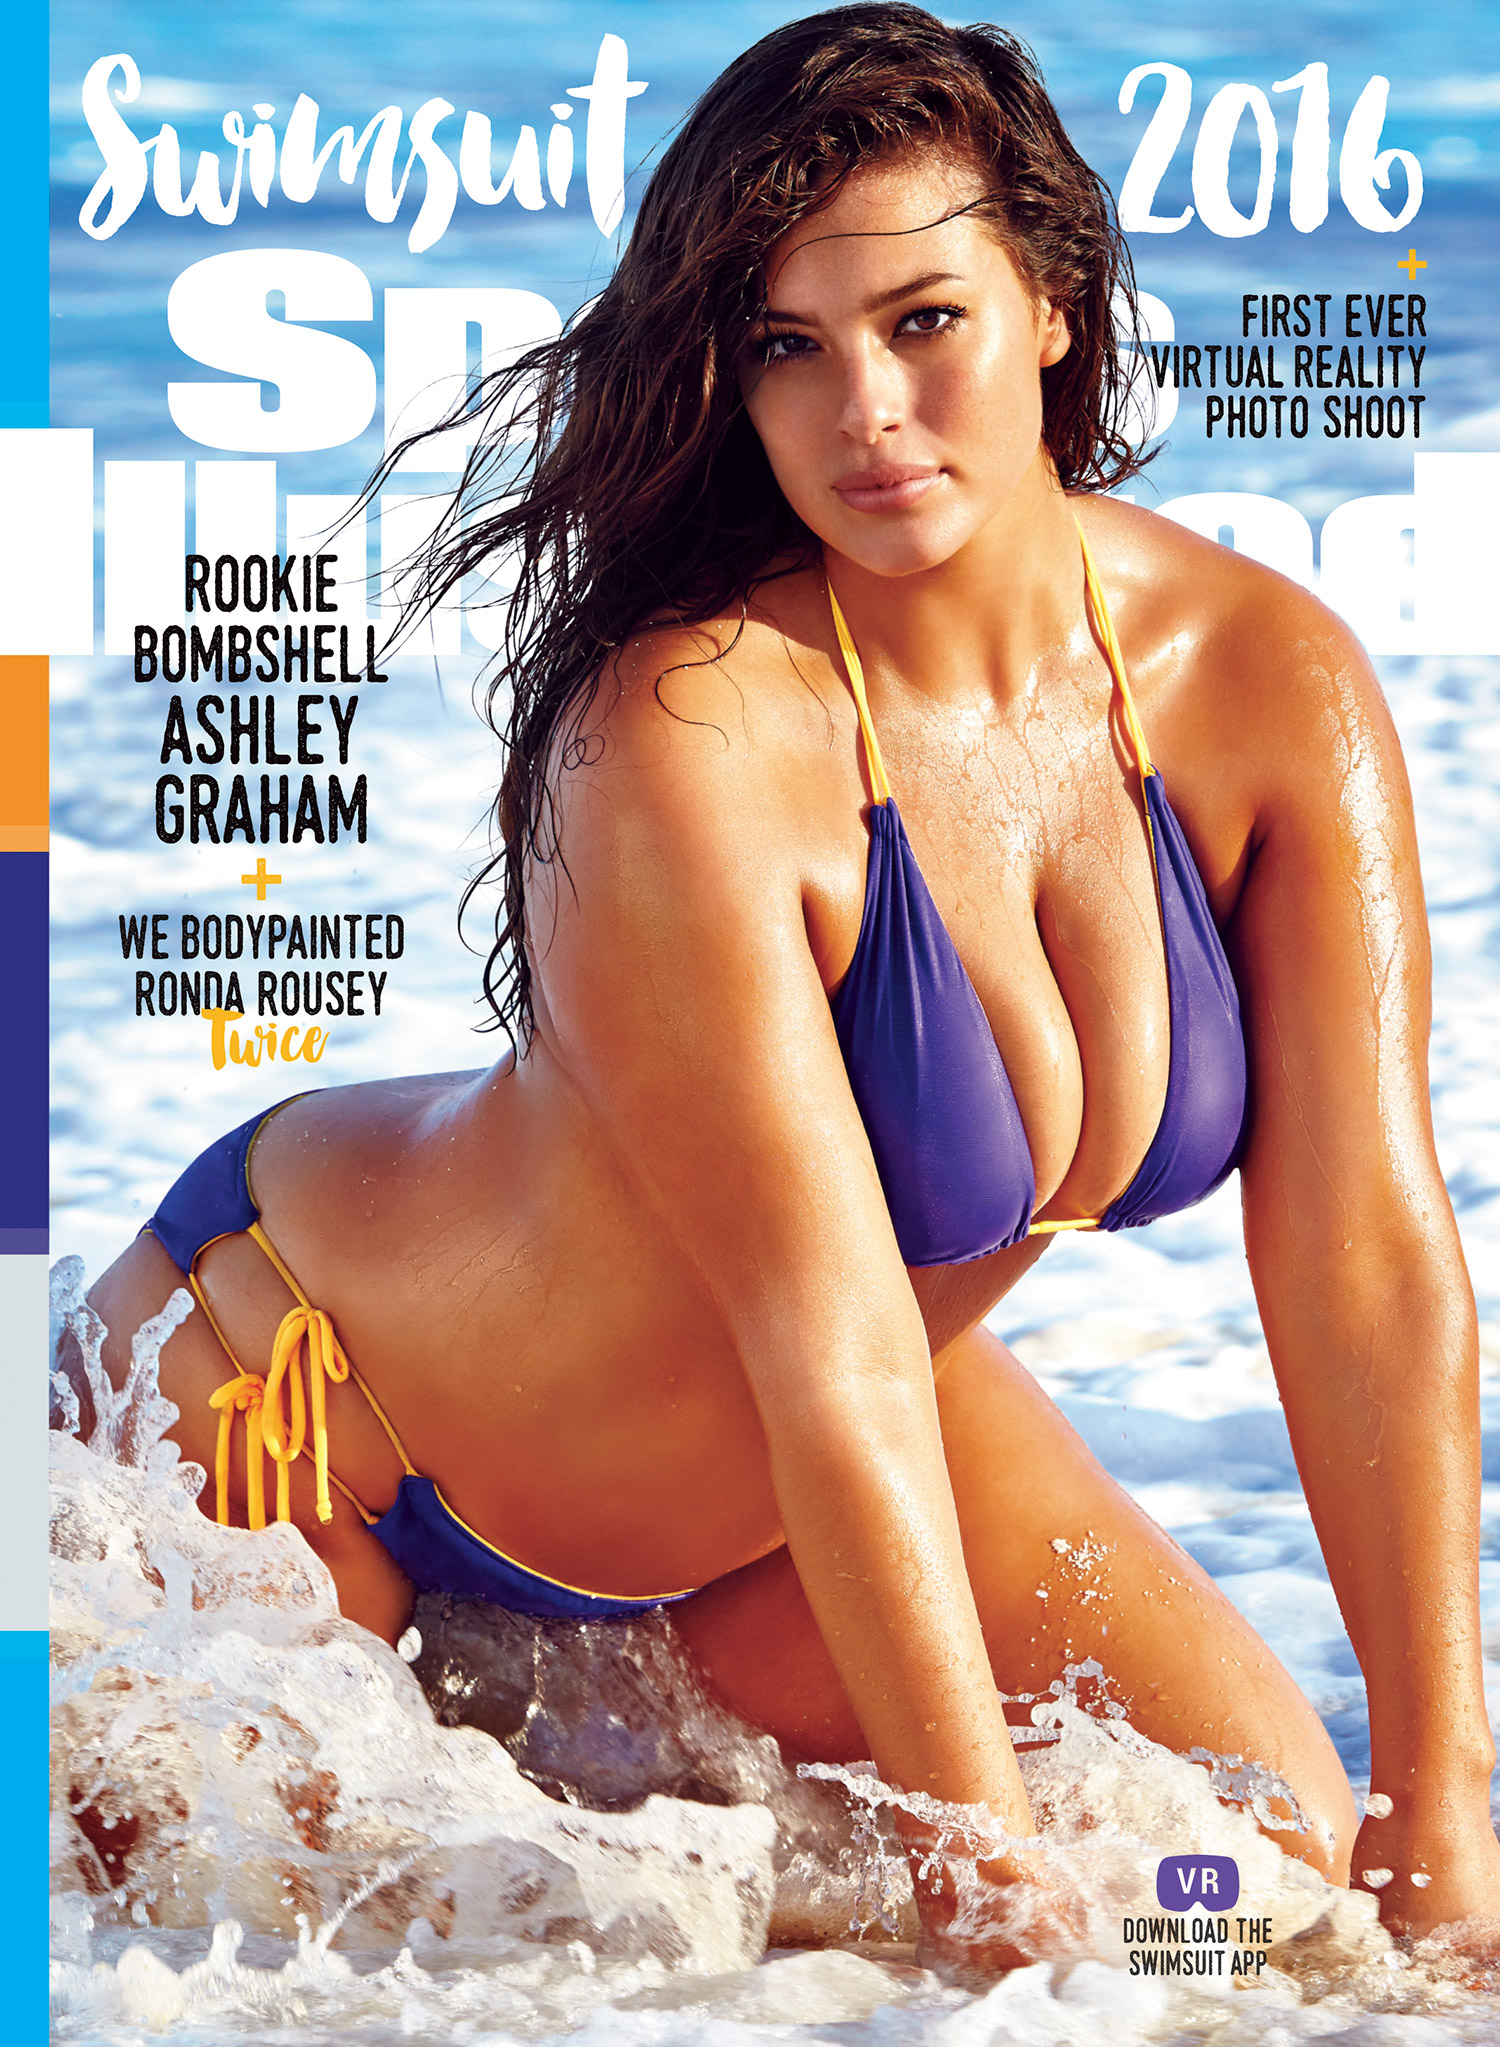 2016 Sports Illustrated cover featuring Ashley Graham